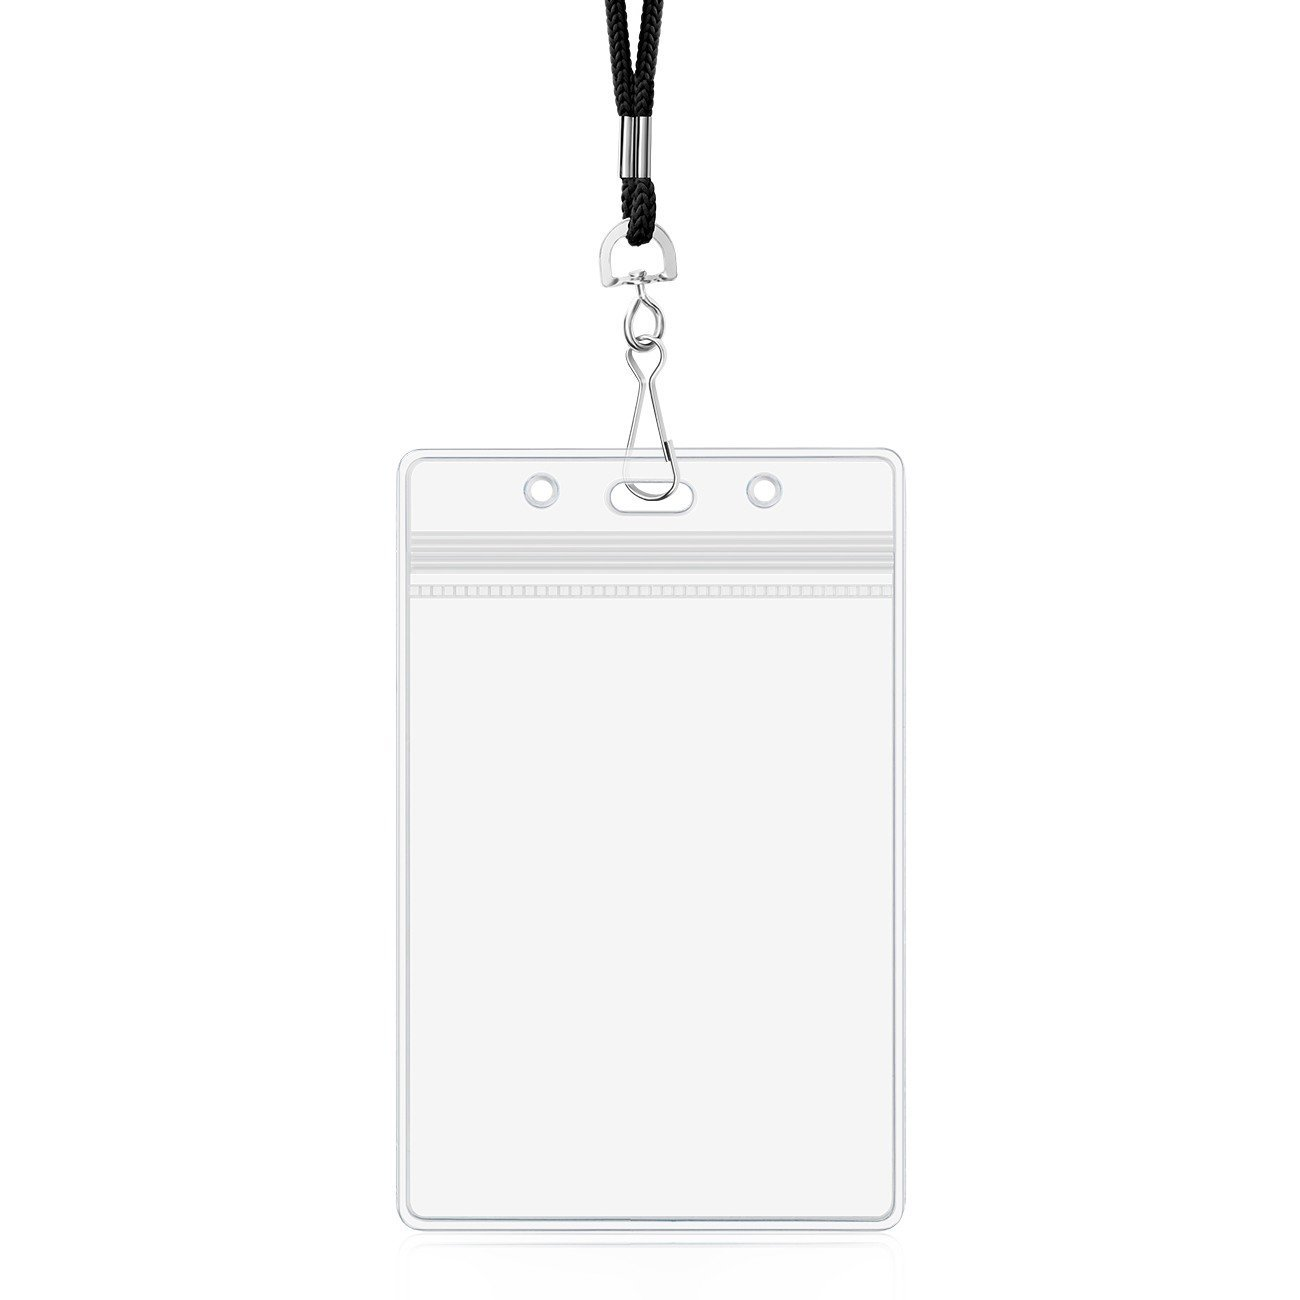 Amazon.com: Vertical ID Badge Holder con cordón plástico ...